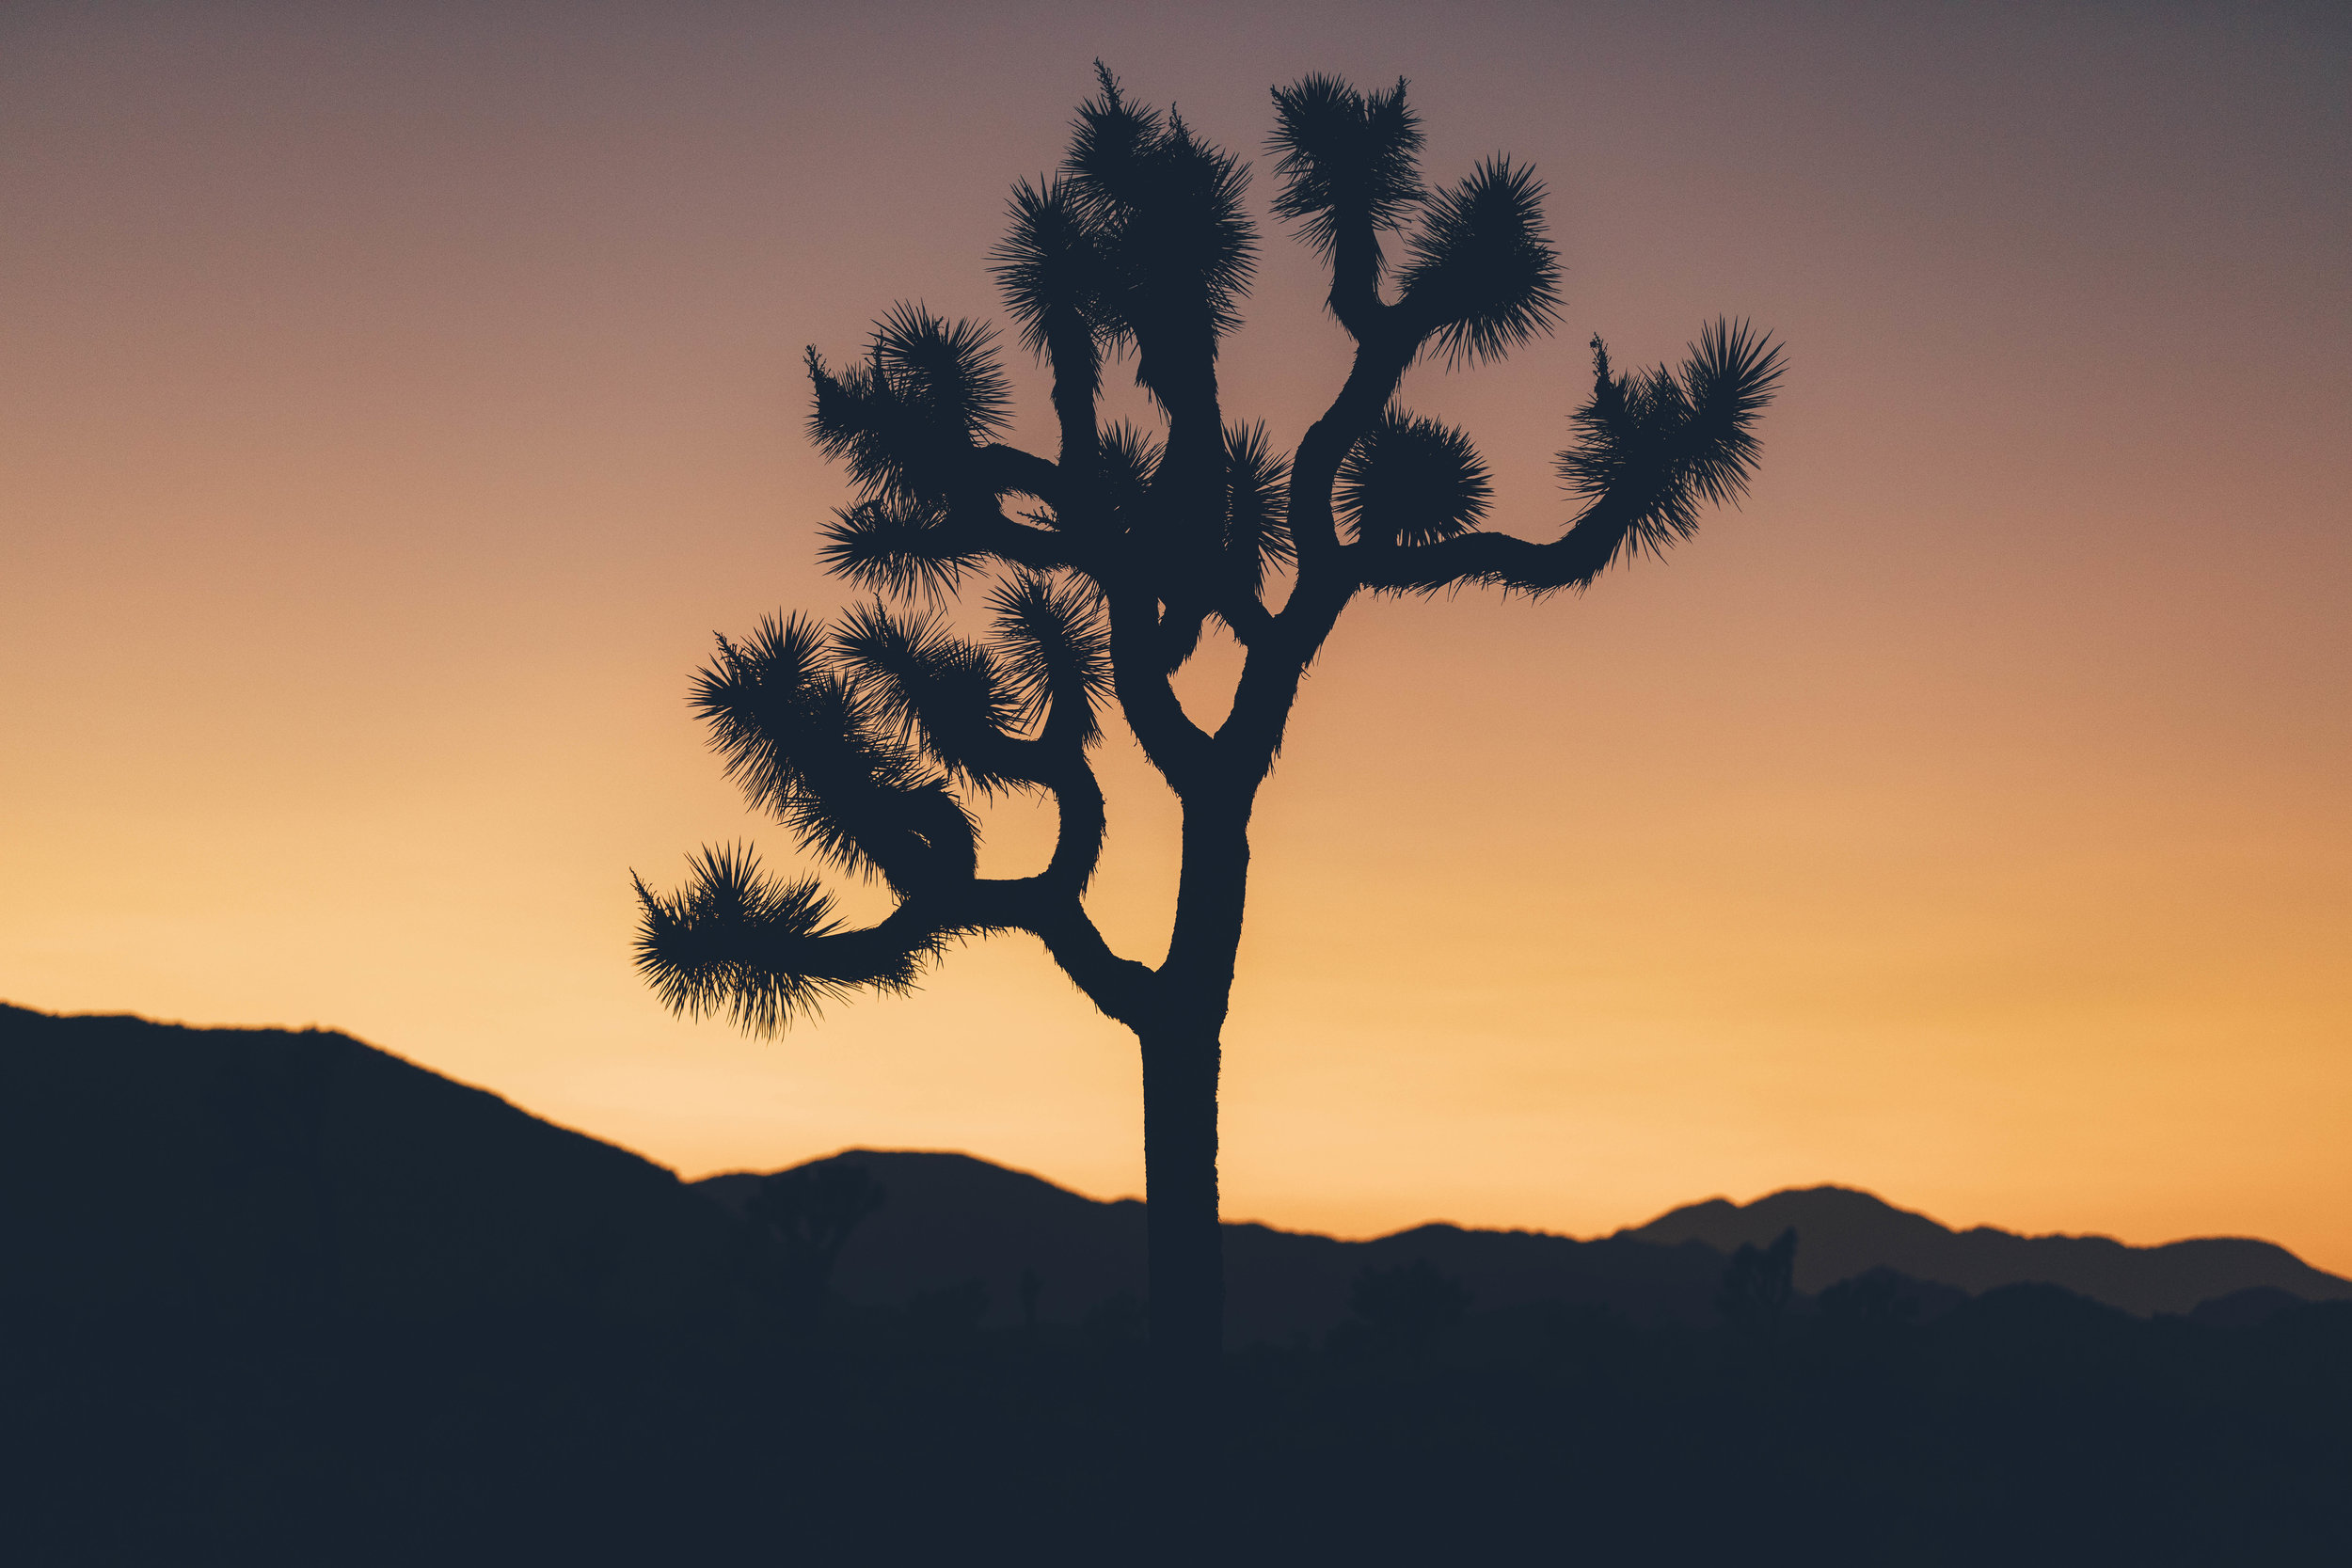 joshua tree james glacier photography-2.jpg